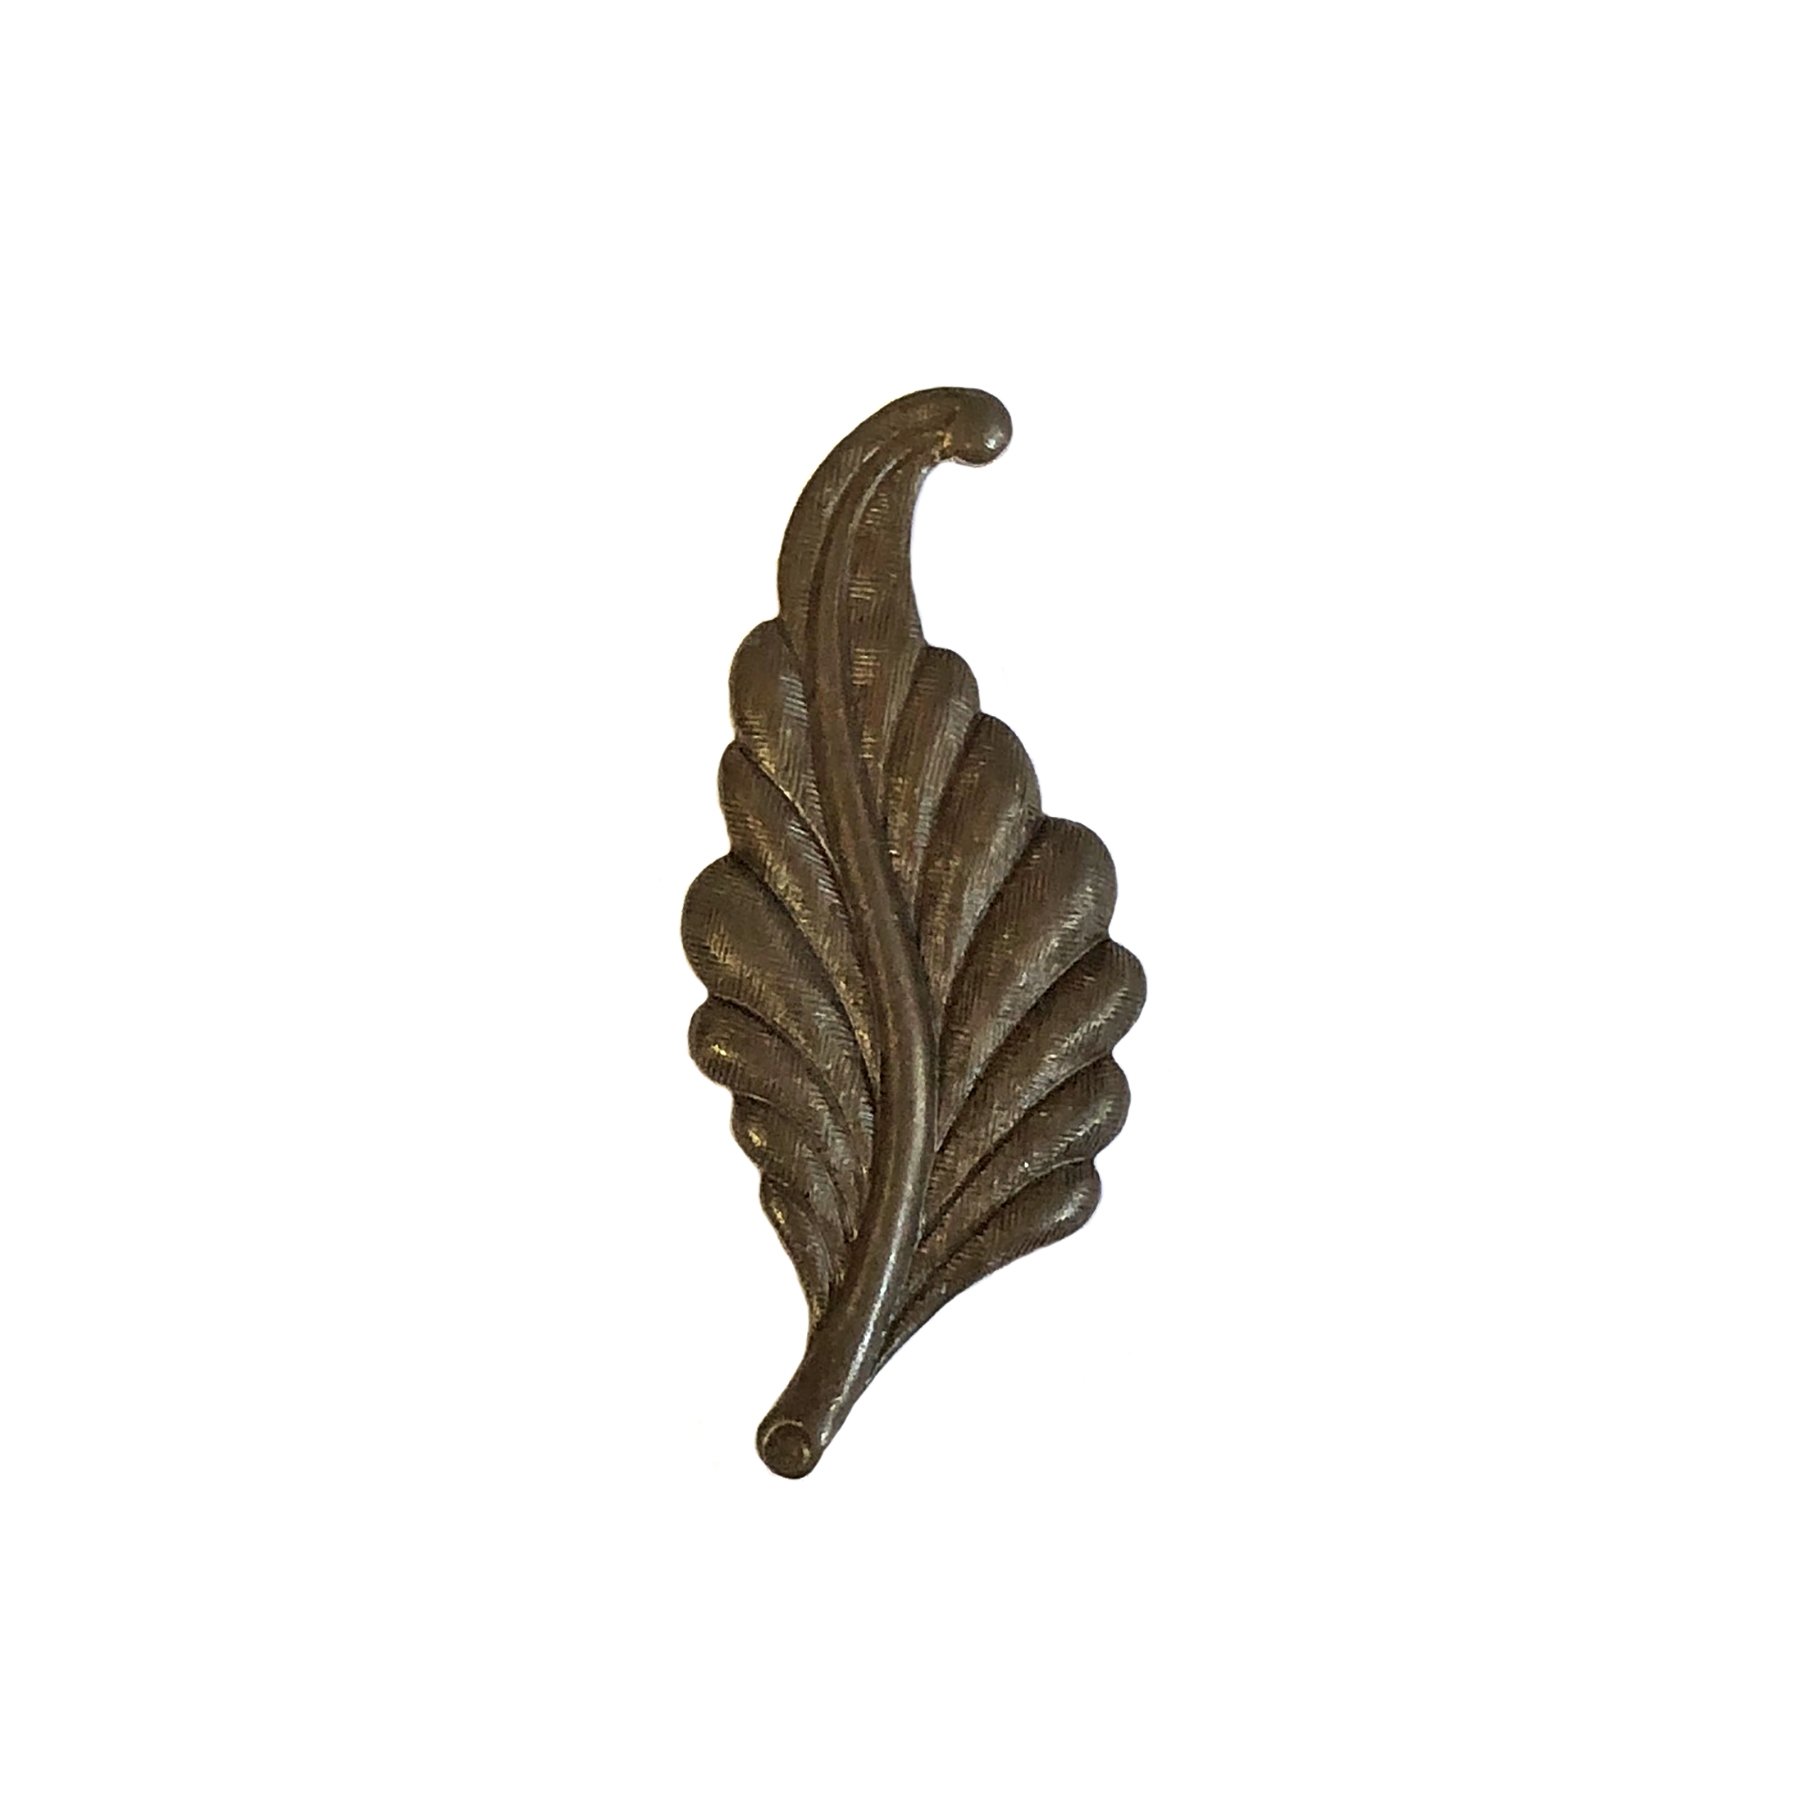 leaf stamping, chocolate brass, right facing, curved, brass, curved leaf, curved style, leaf, 31mm, right, brass stamping, us made, nickel free, B'sue Boutiques, jewelry making, jewelry supplies, vintage supplies, jewelry findings, 09940